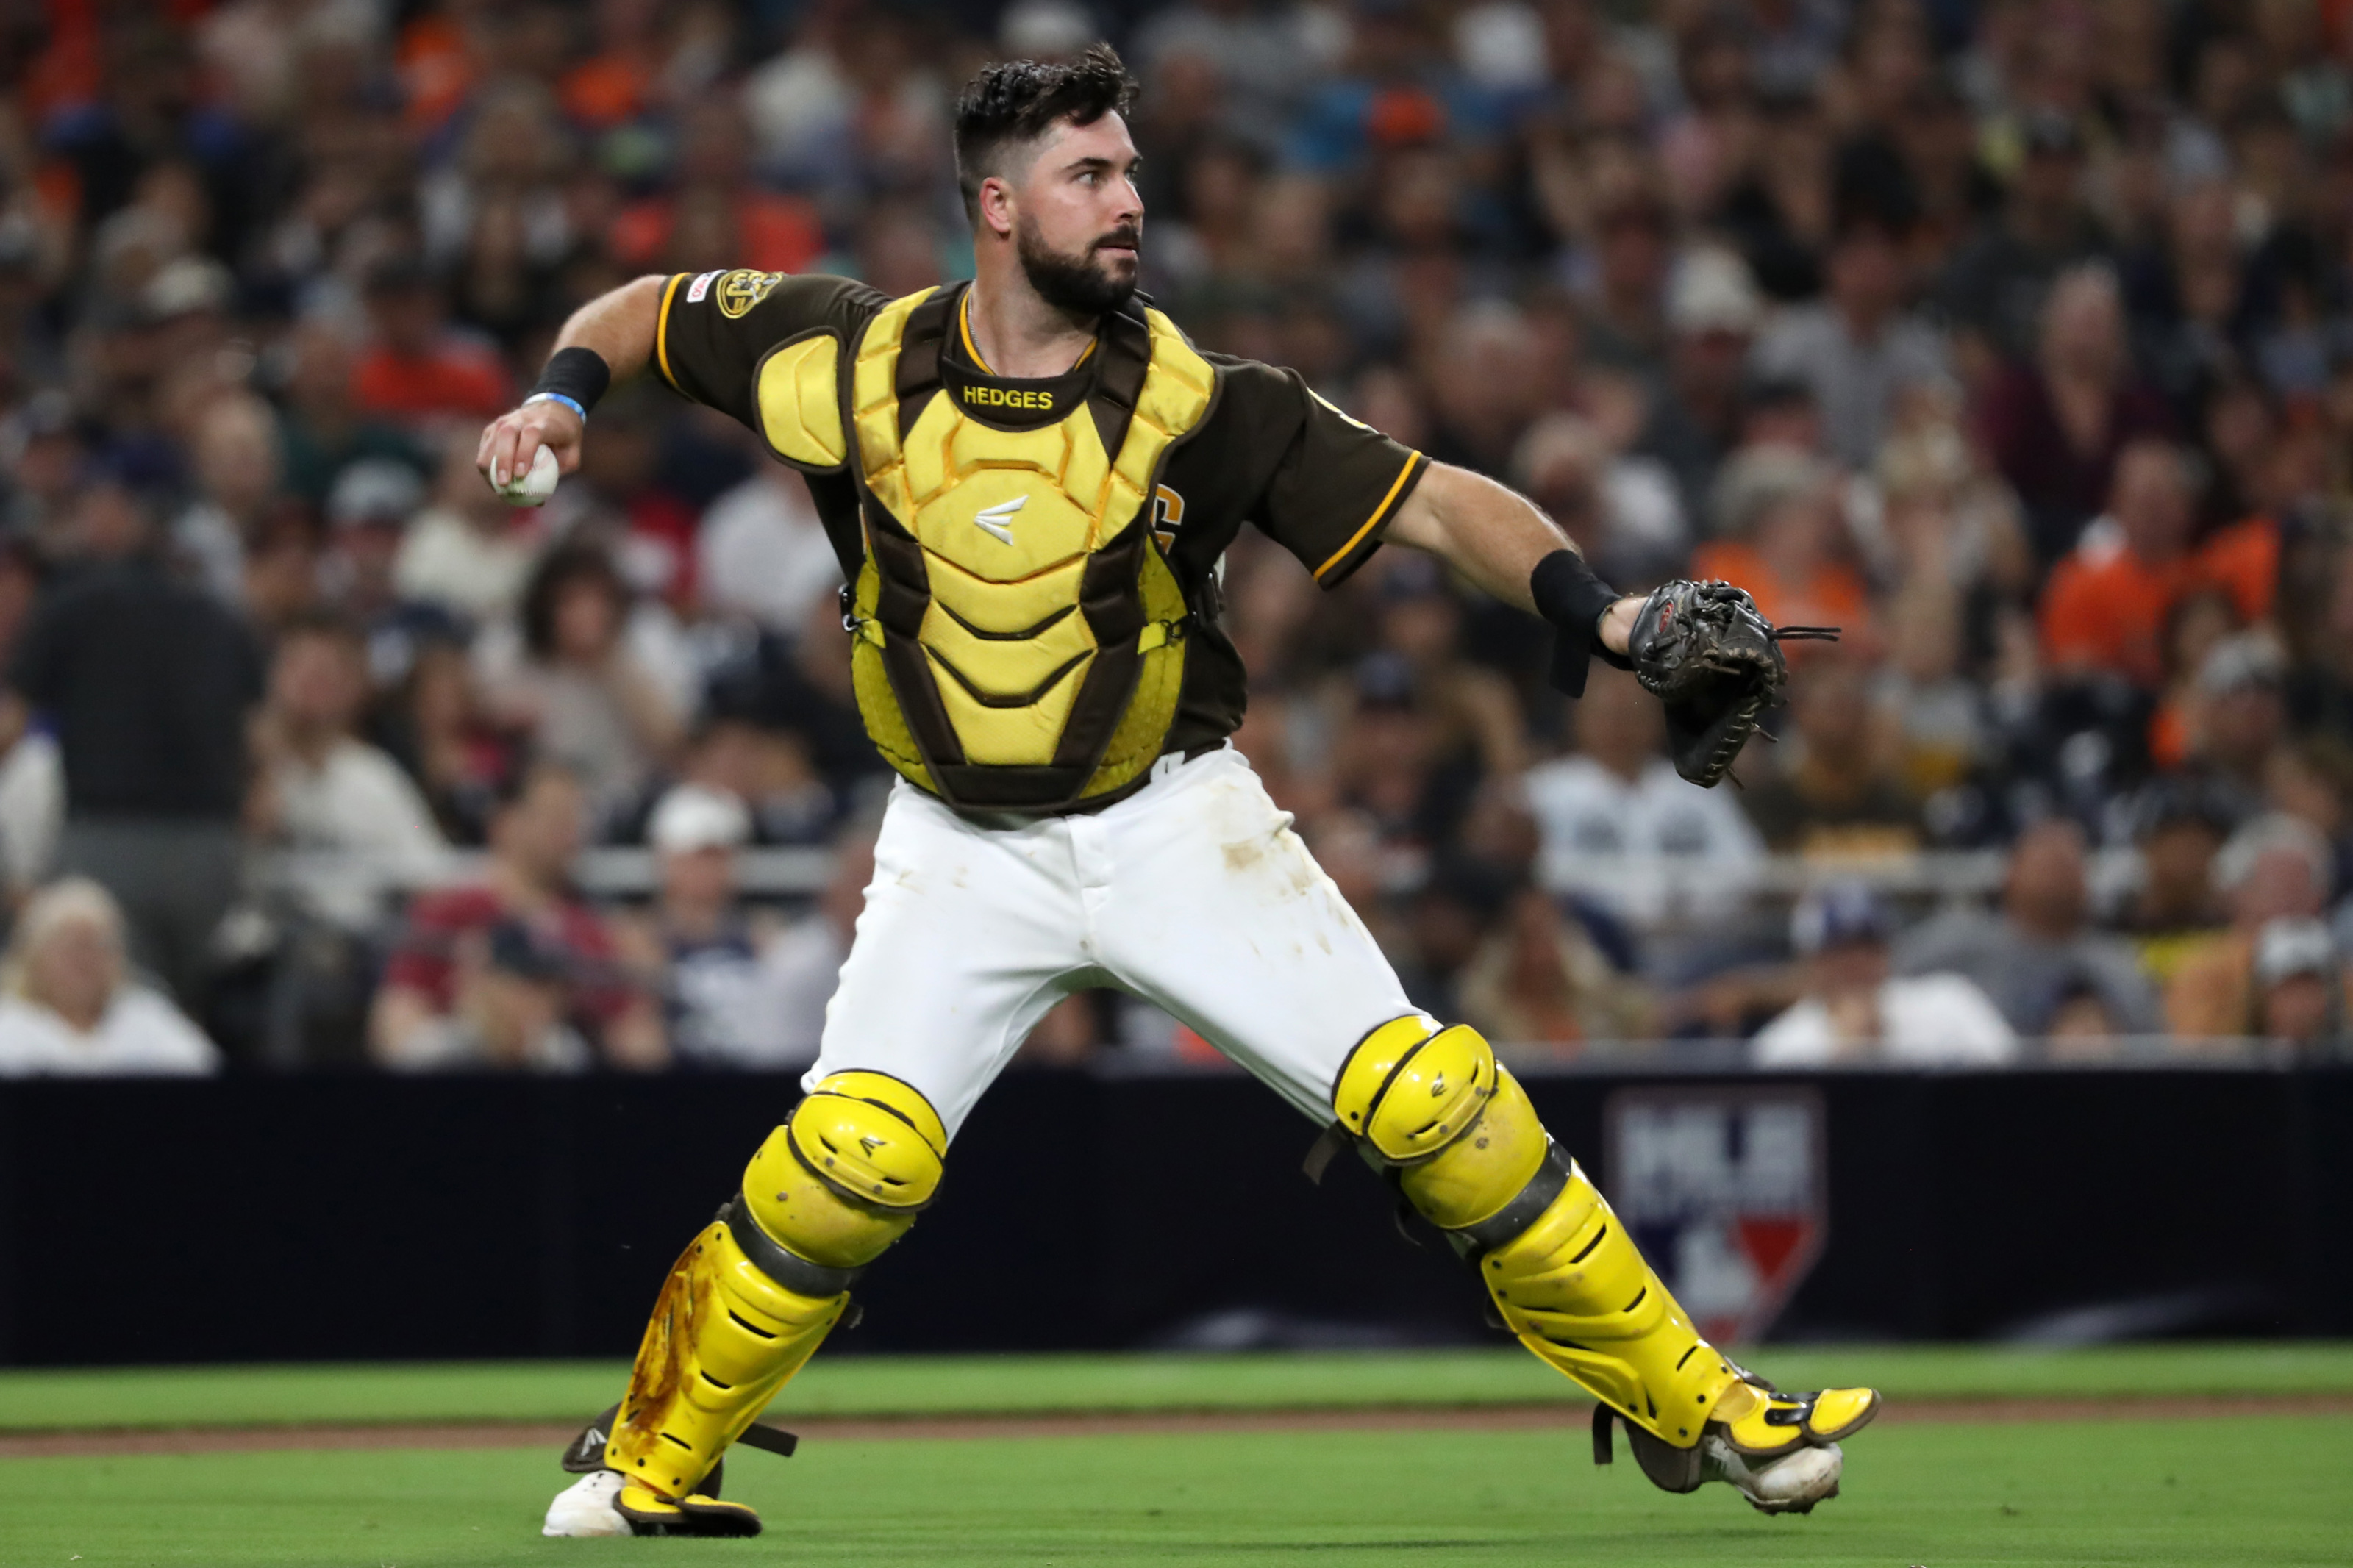 Padres: 3 teams who could trade for Austin Hedges